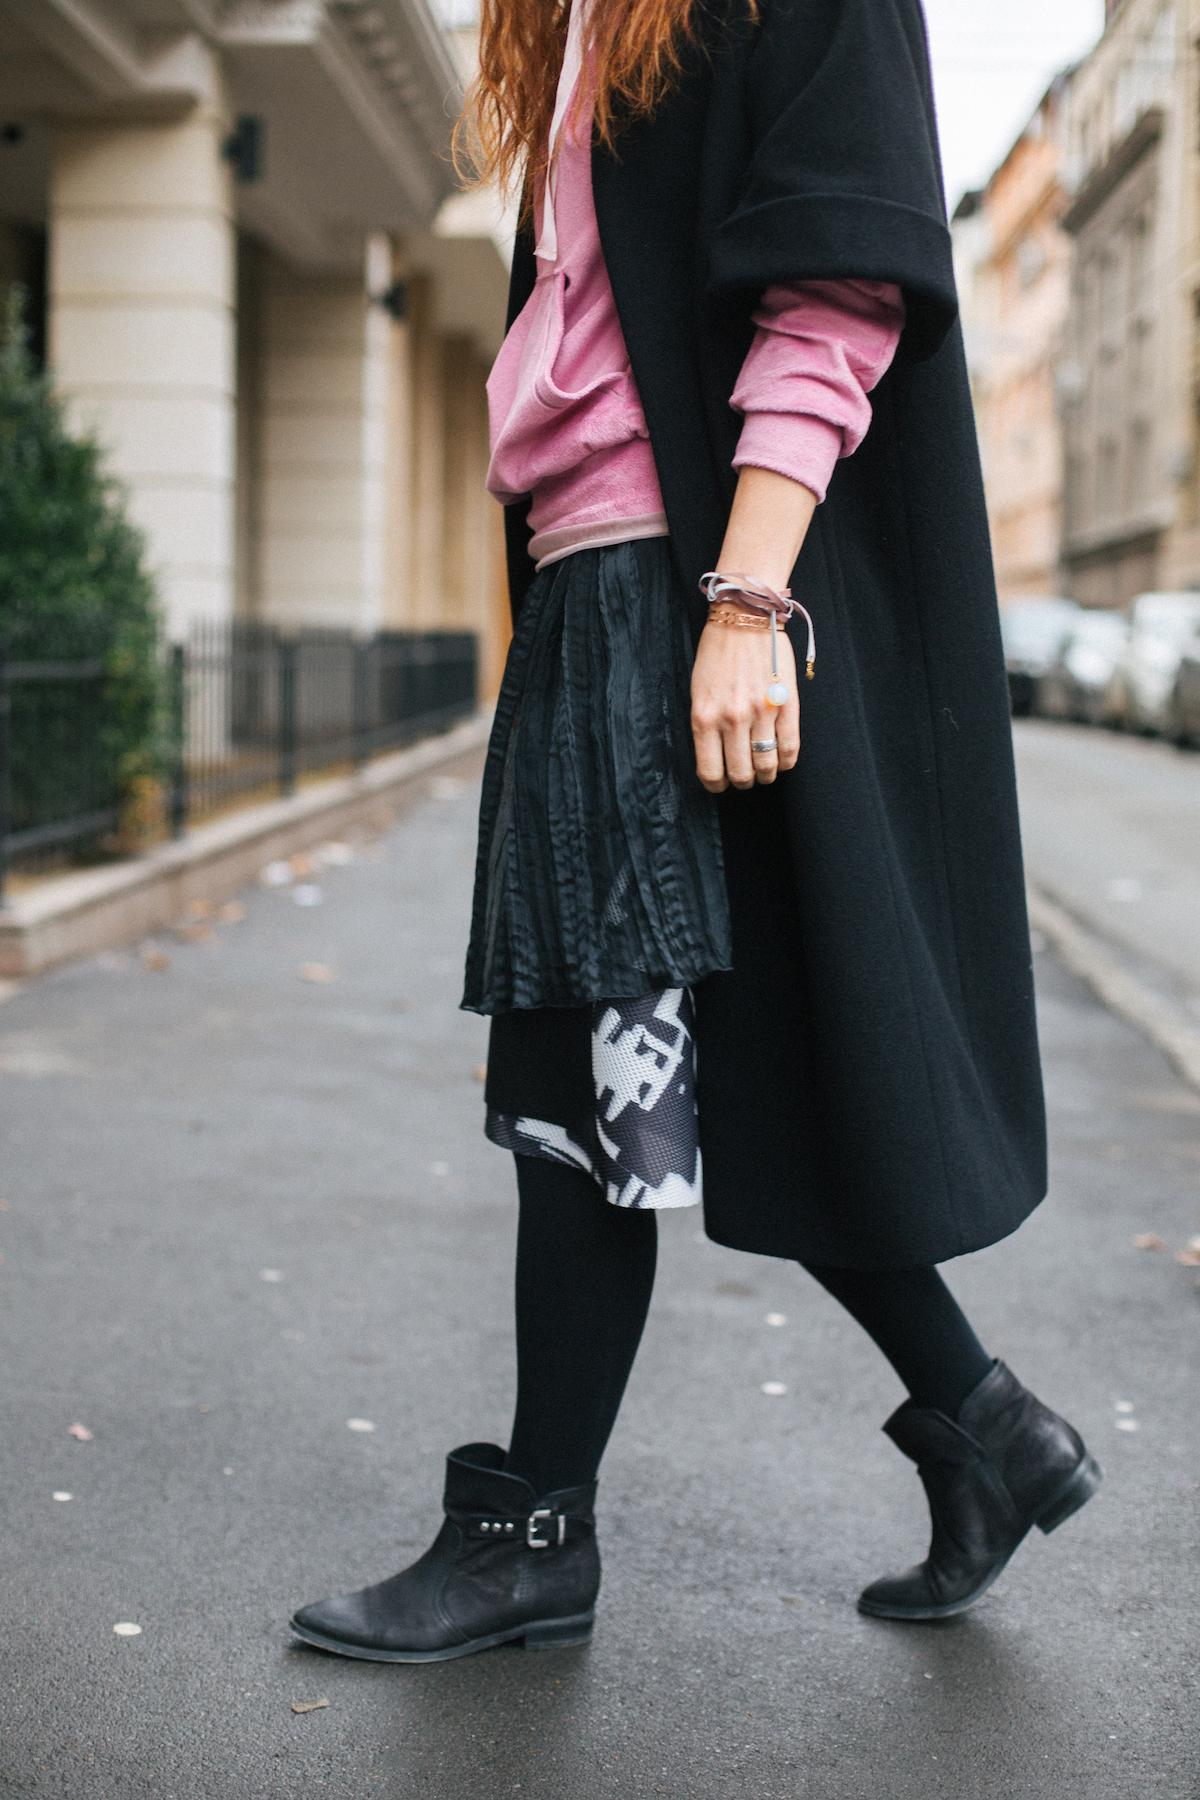 street style fashion blogger Nika Veger Foto Jovana Tomasevic